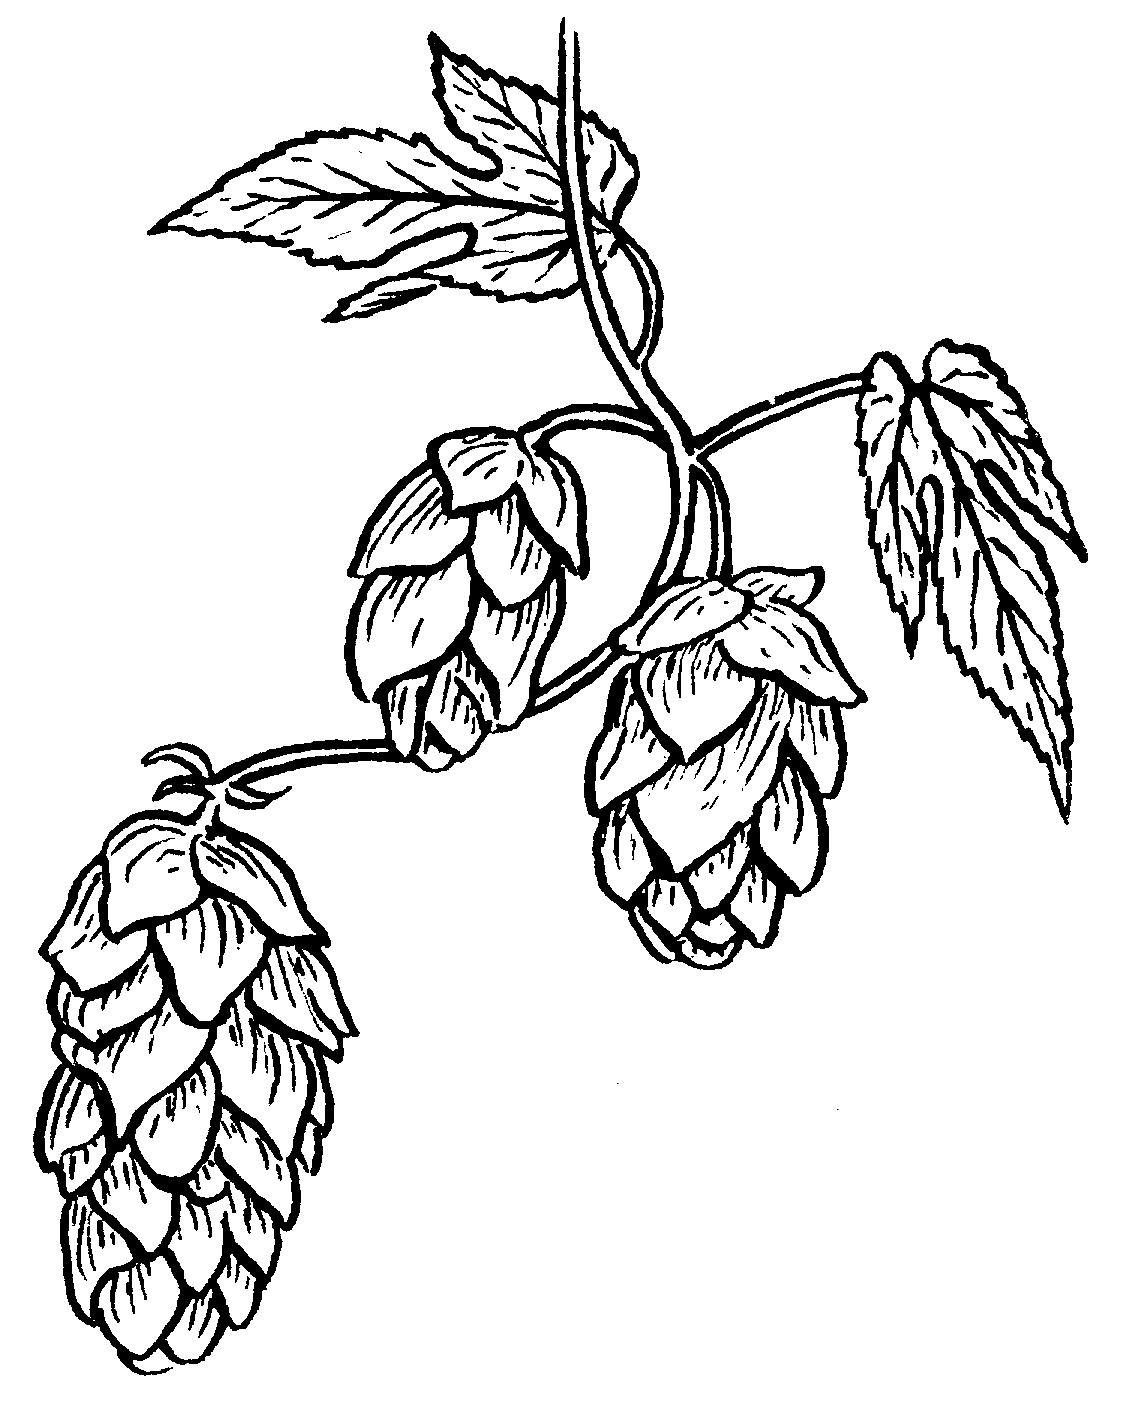 Free Hops Cliparts, Download Free Clip Art, Free Clip Art on Clipart.